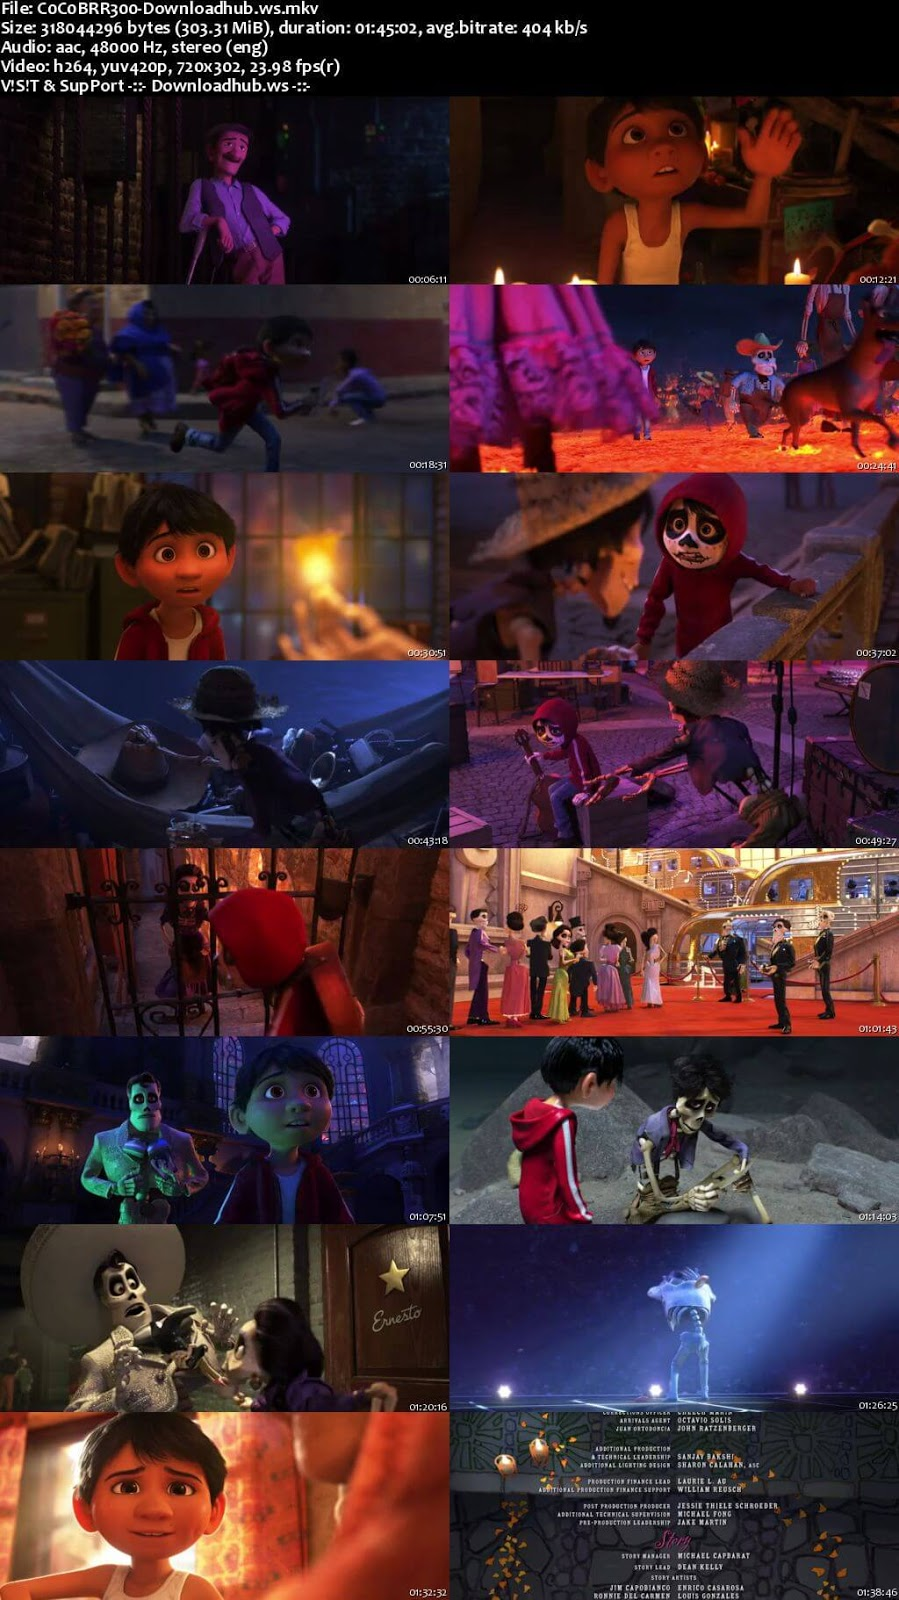 Coco 2017 English 480p BRRip ESubs